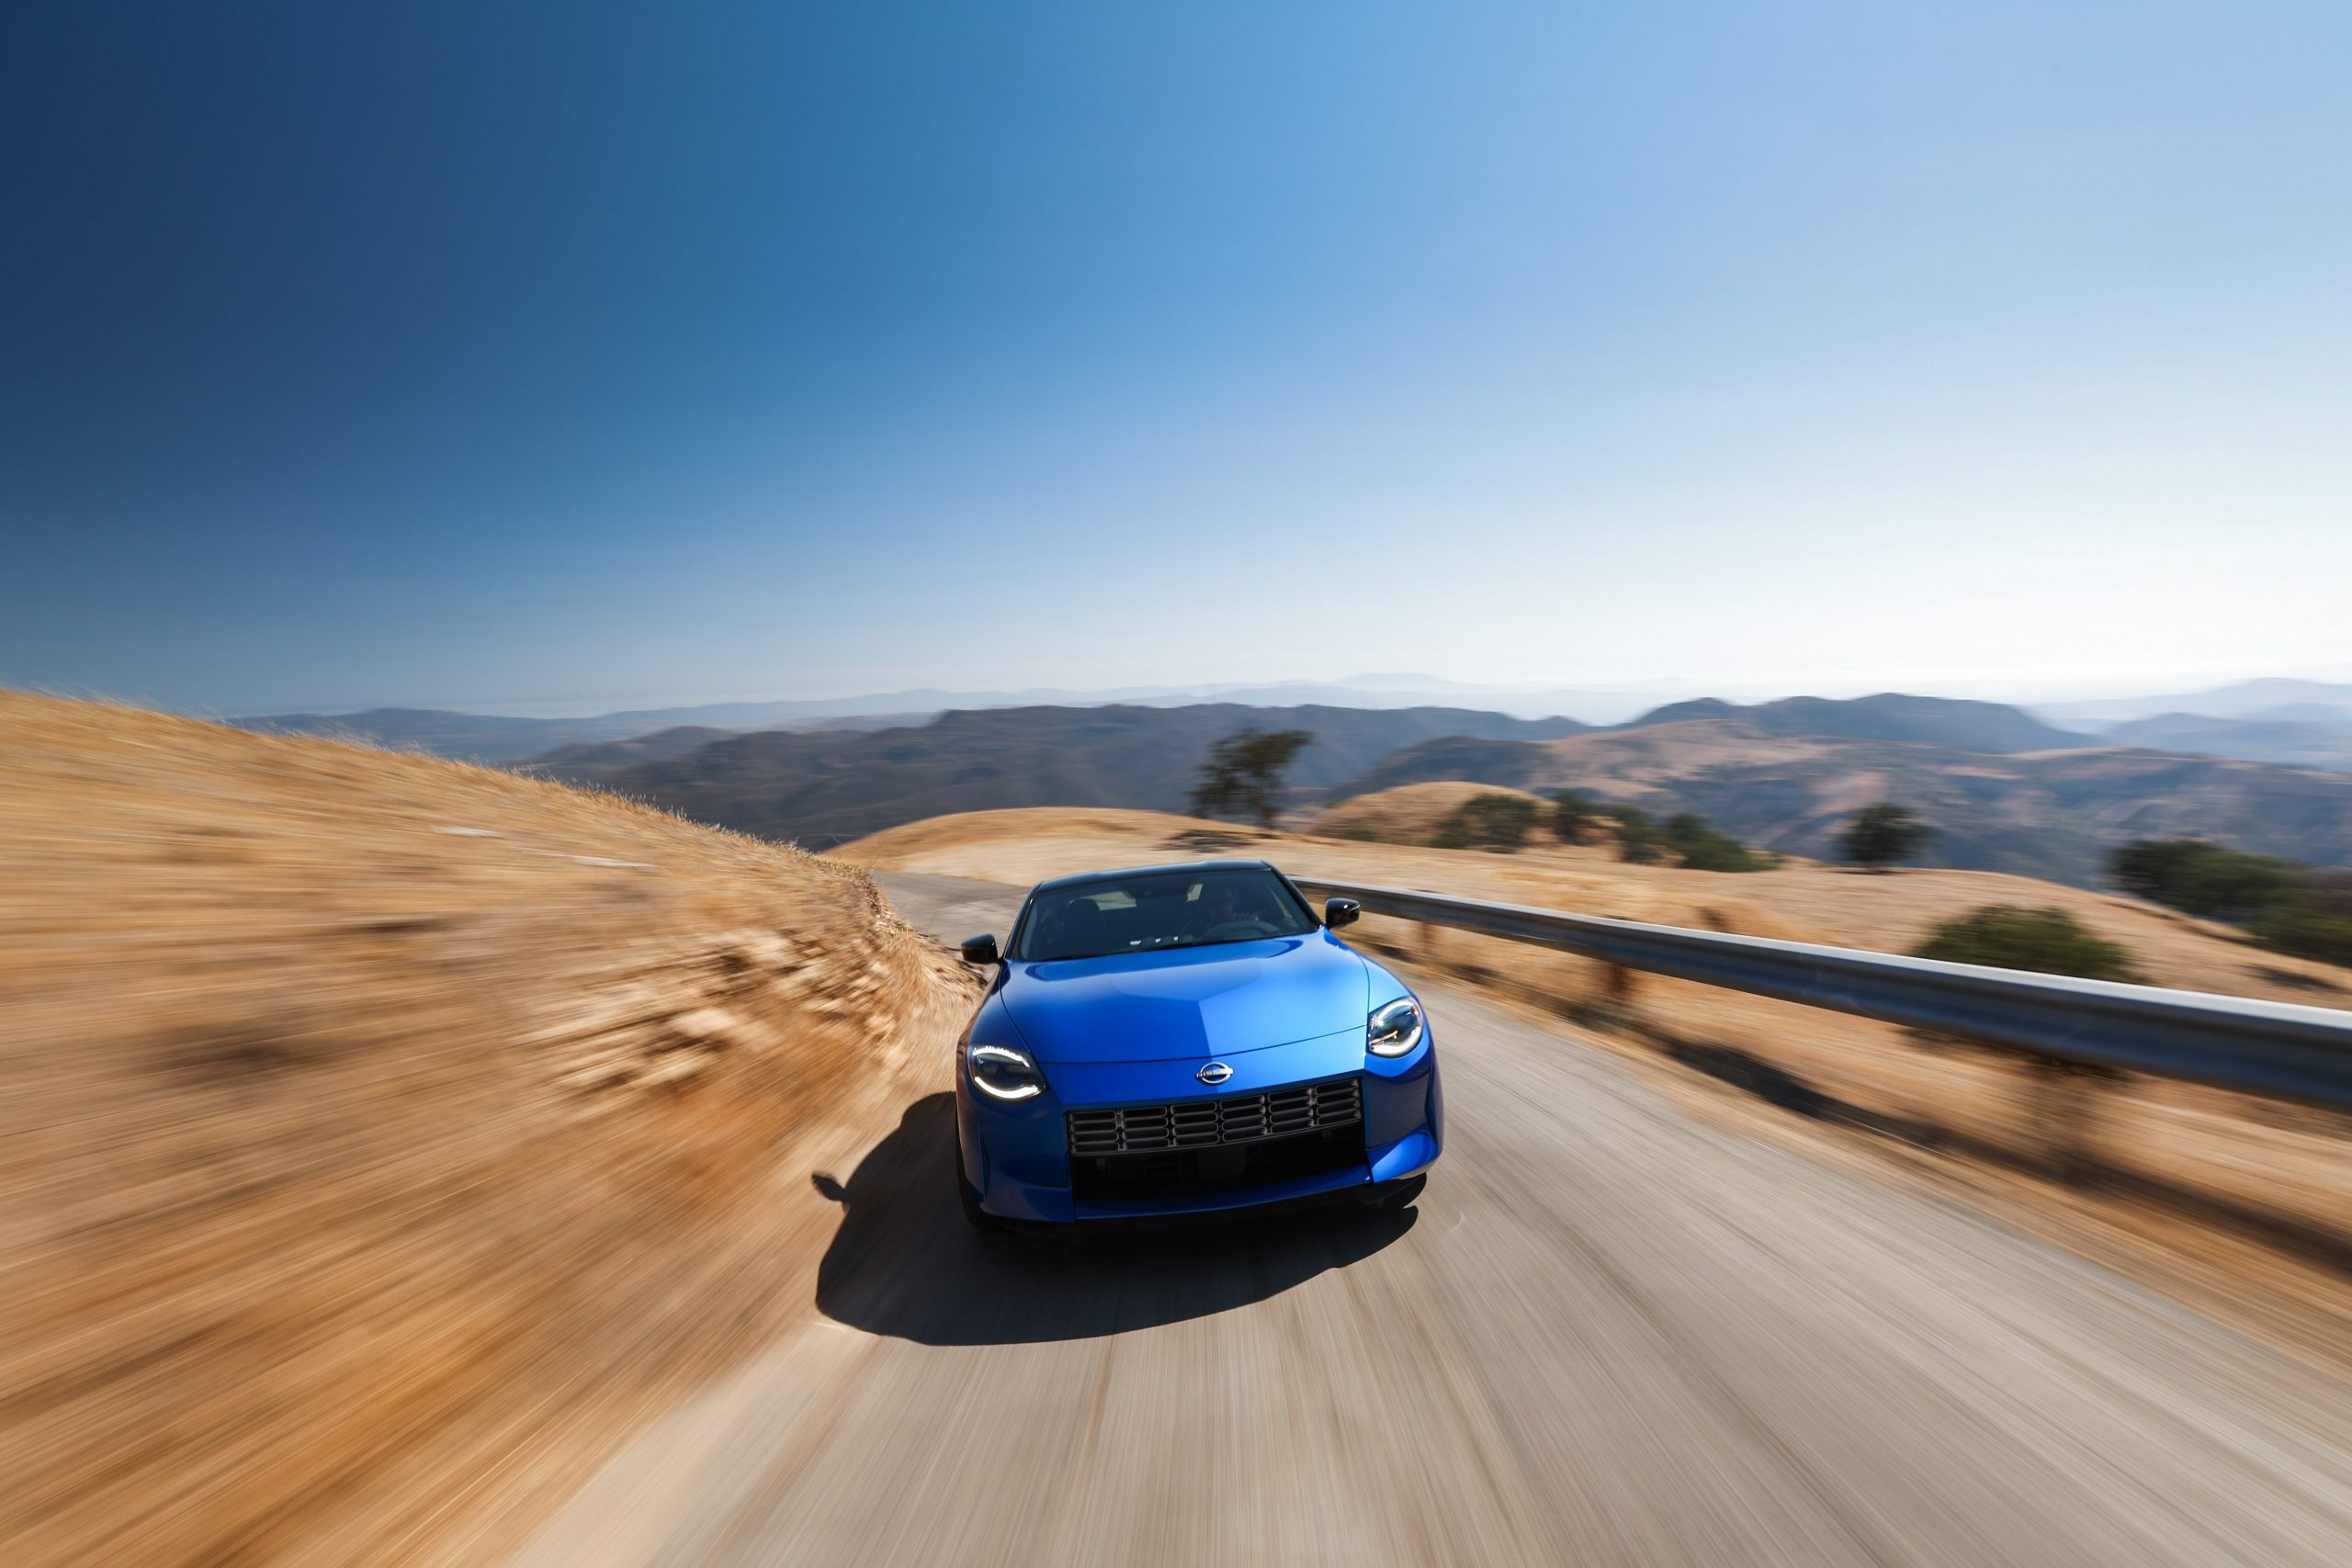 400-horsepower Nissan Z sports car revealed: Nissan remakes 370Z, drops numbers from nameplate